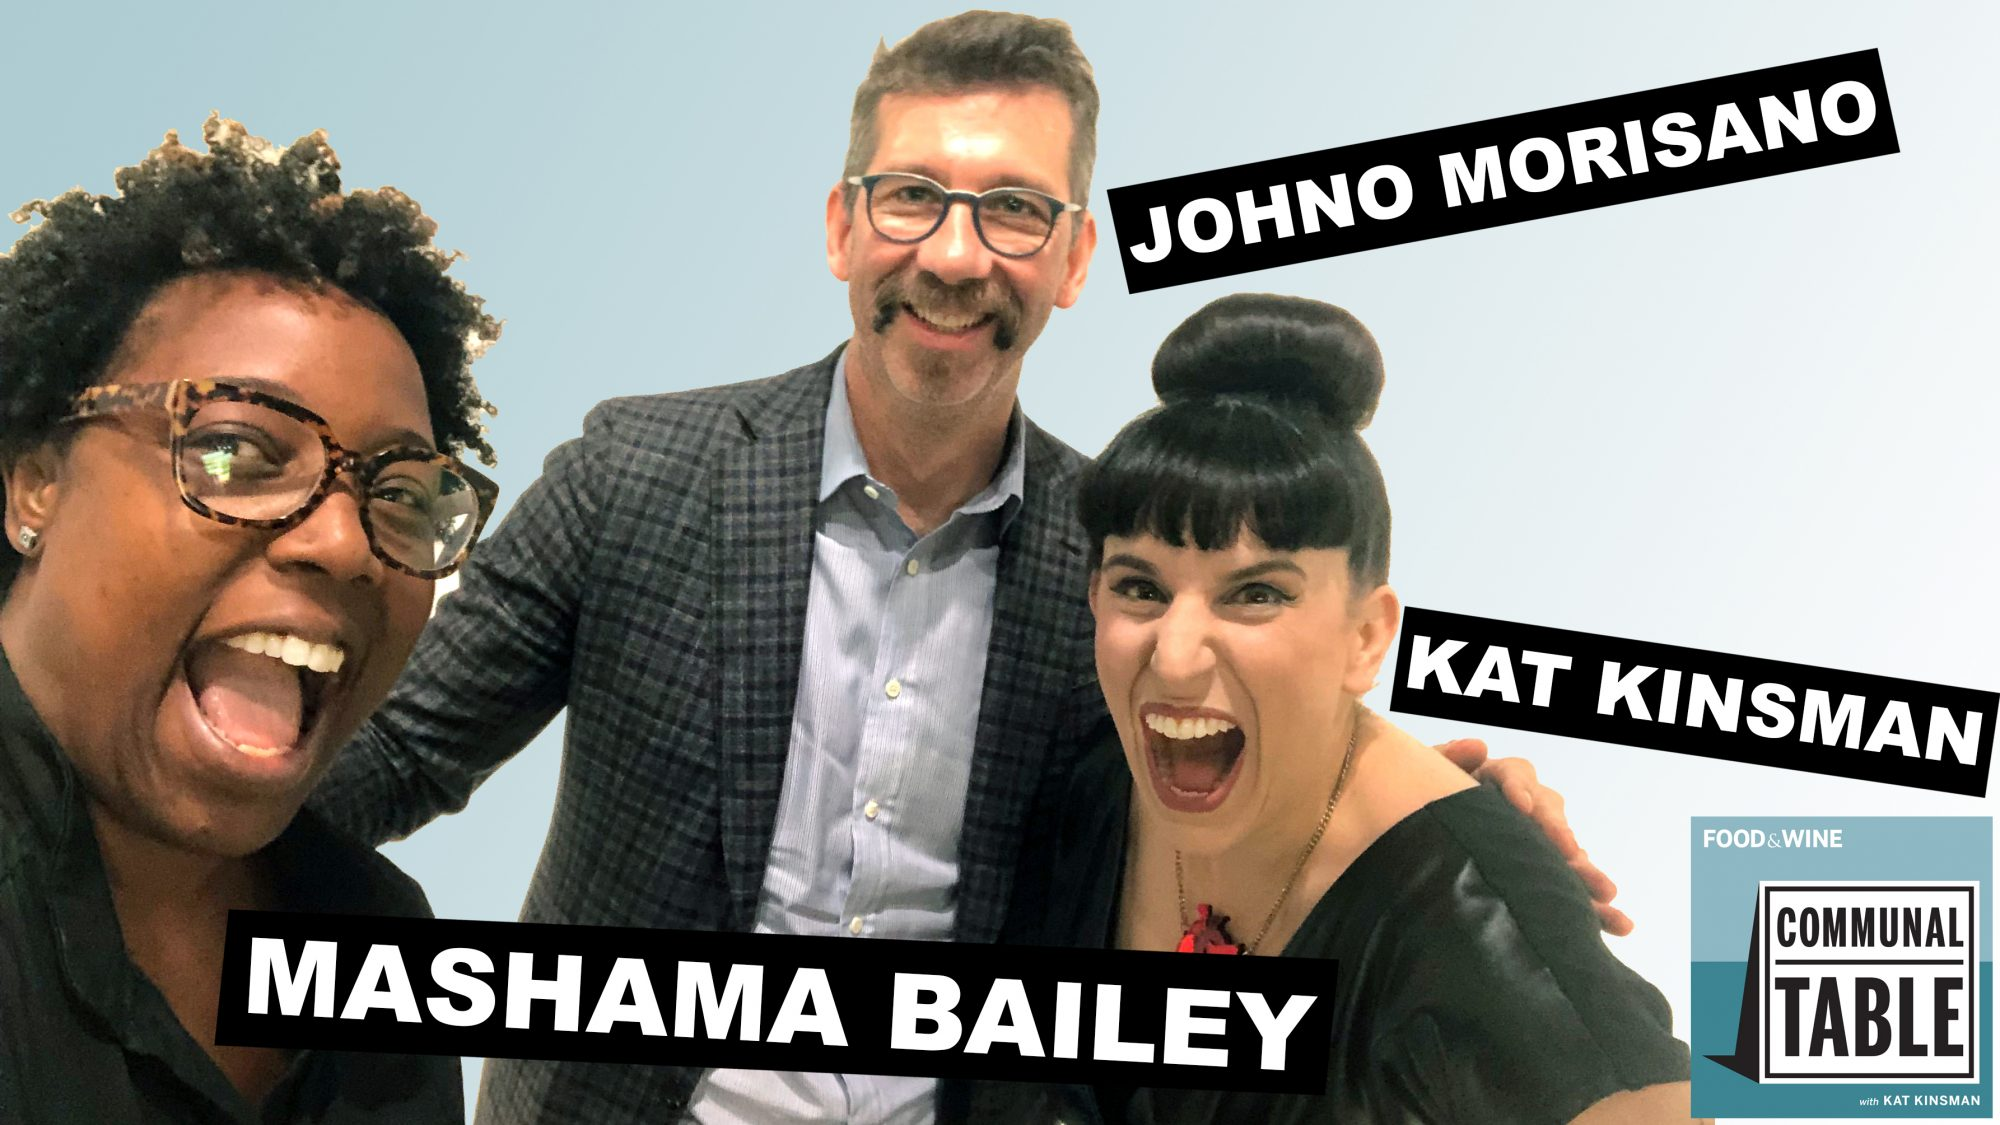 Communal Table Podcast: Mashama Bailey and Johno Morisano